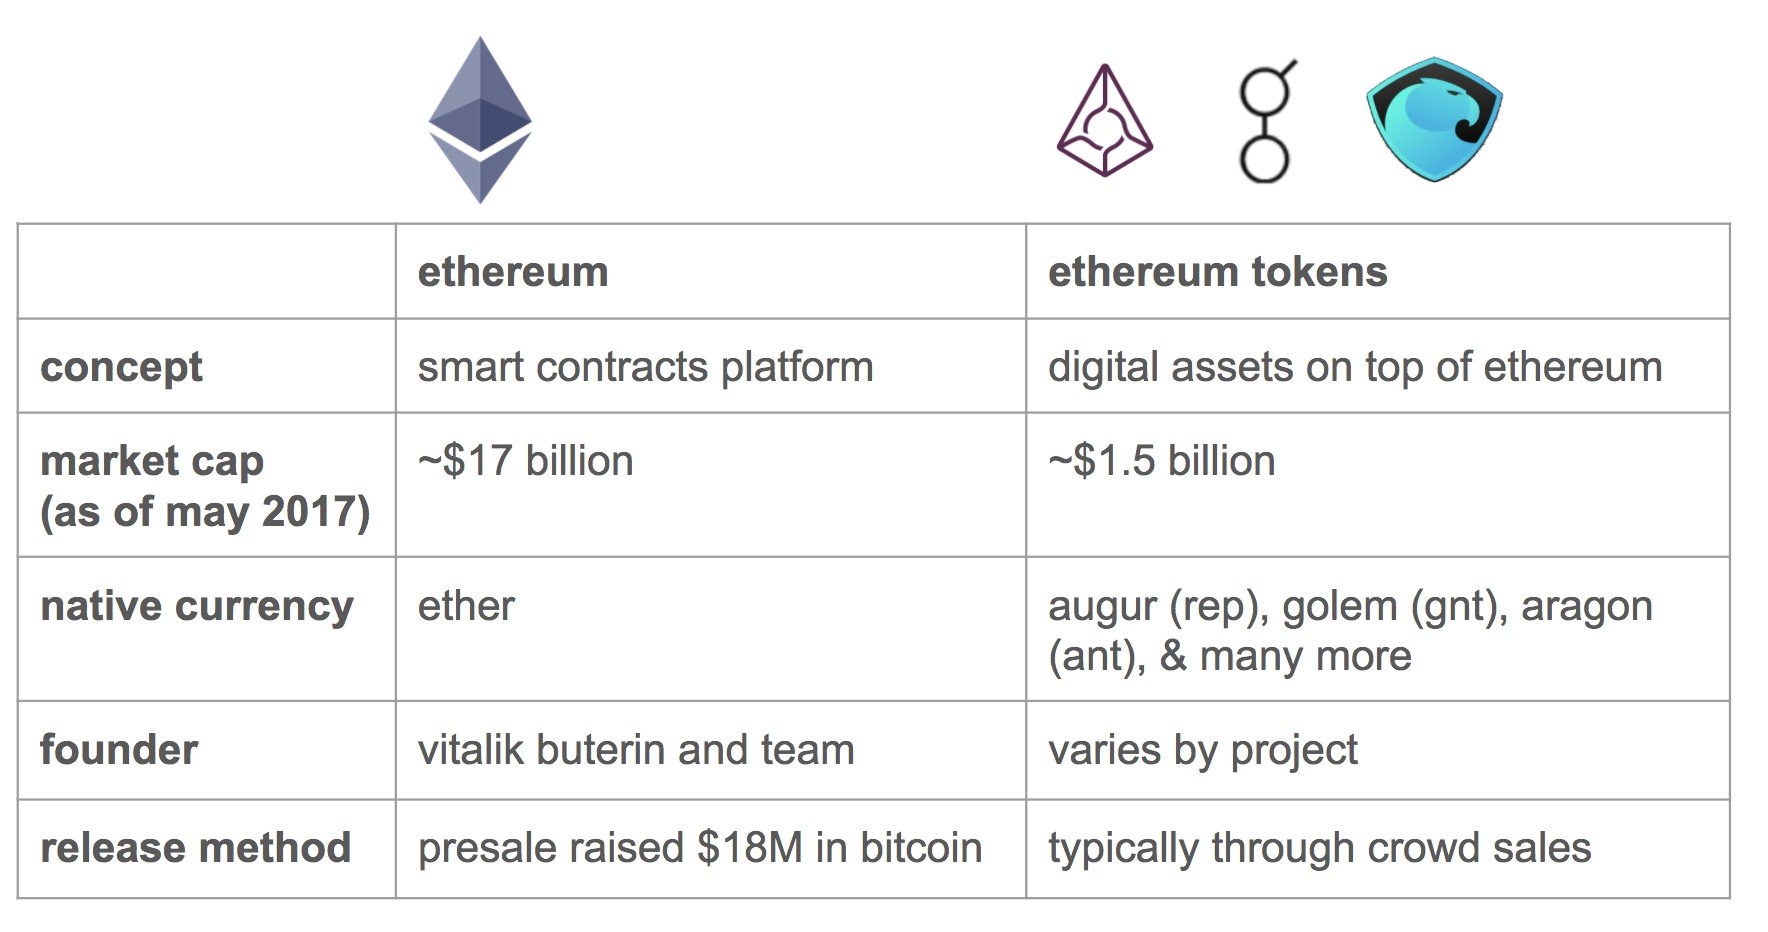 A beginner's guide to Ethereum tokens - The Coinbase Blog